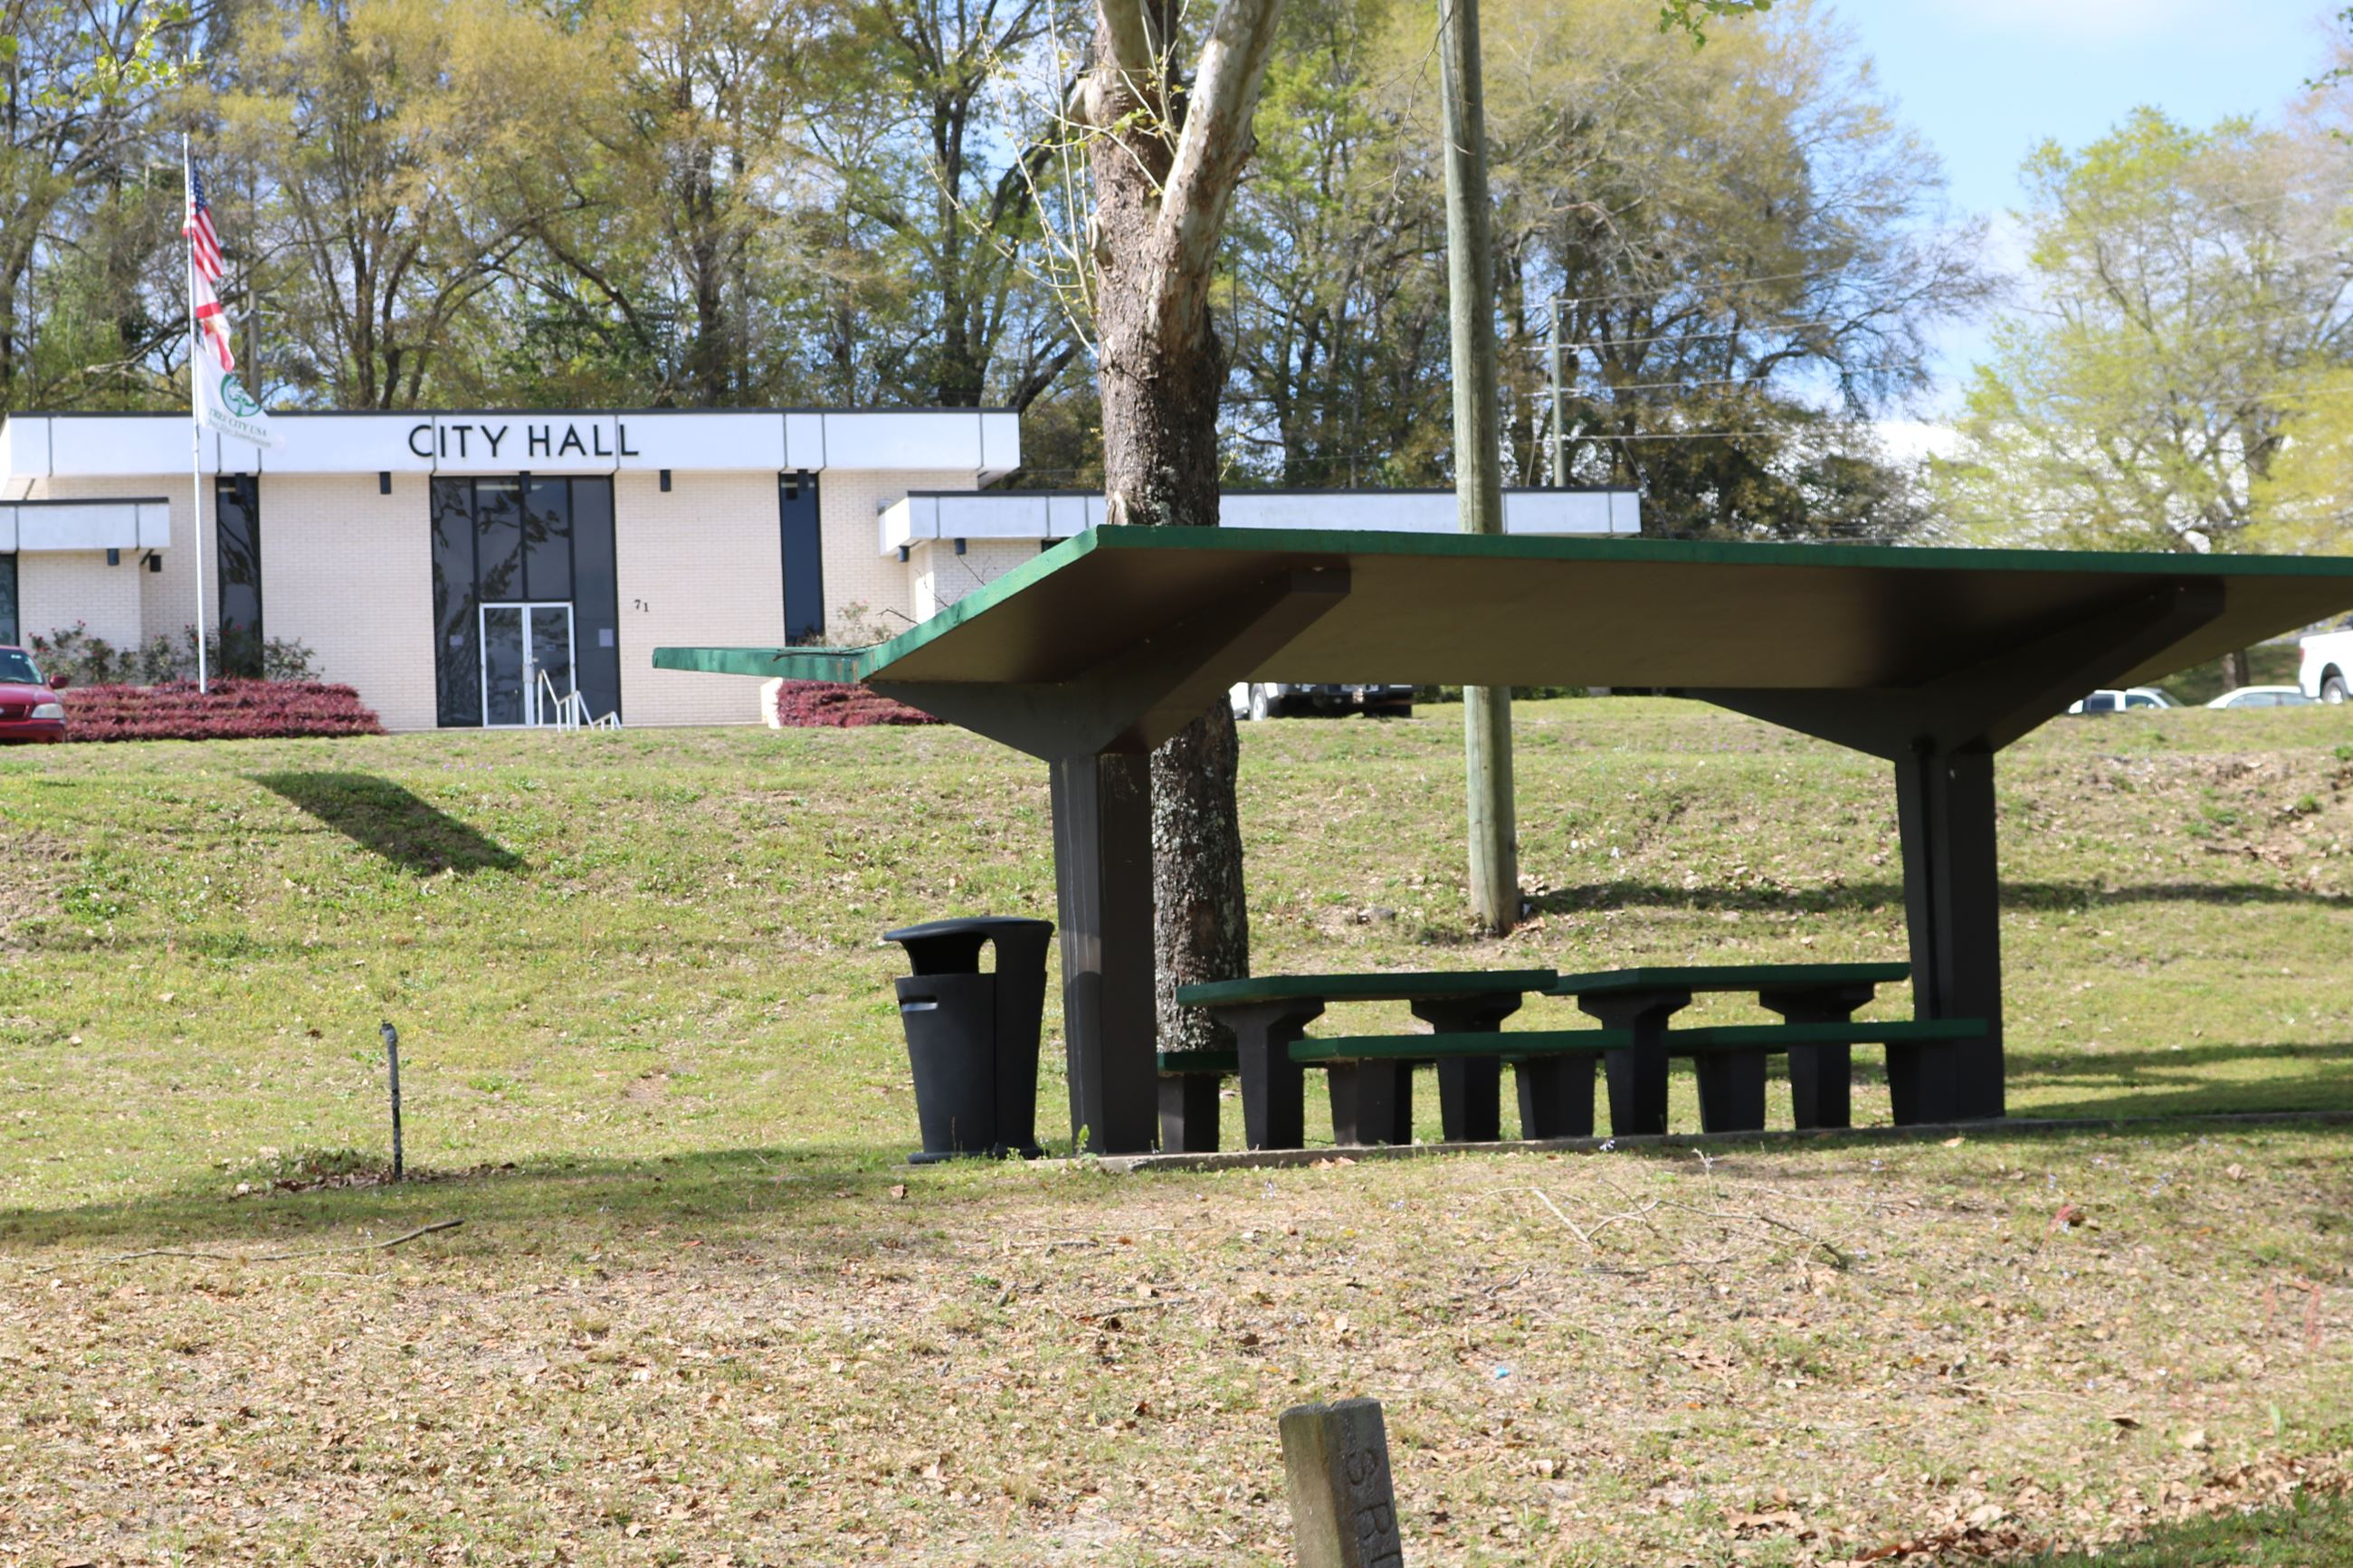 One of three picnic pavilions at Wayside Park